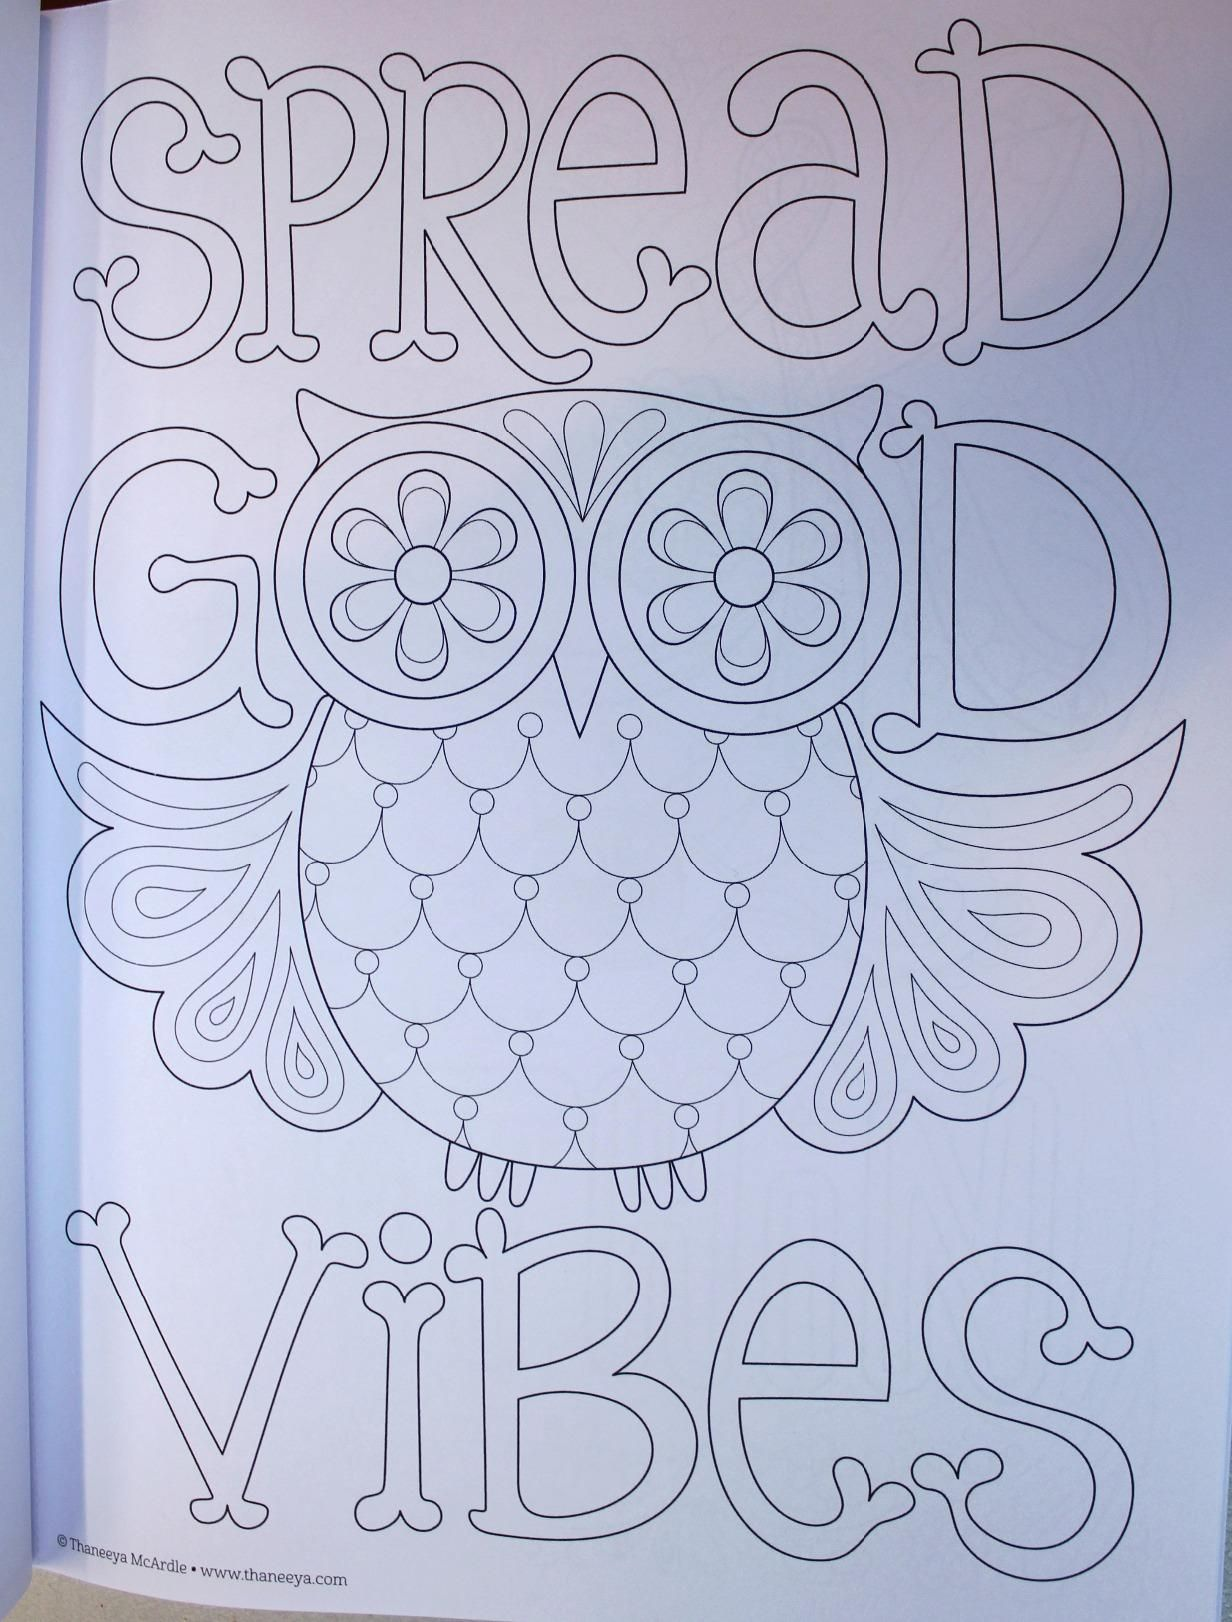 Good Vibes Coloring Book Is Fun Thaneeya McArdle 9781574219951 Amazon